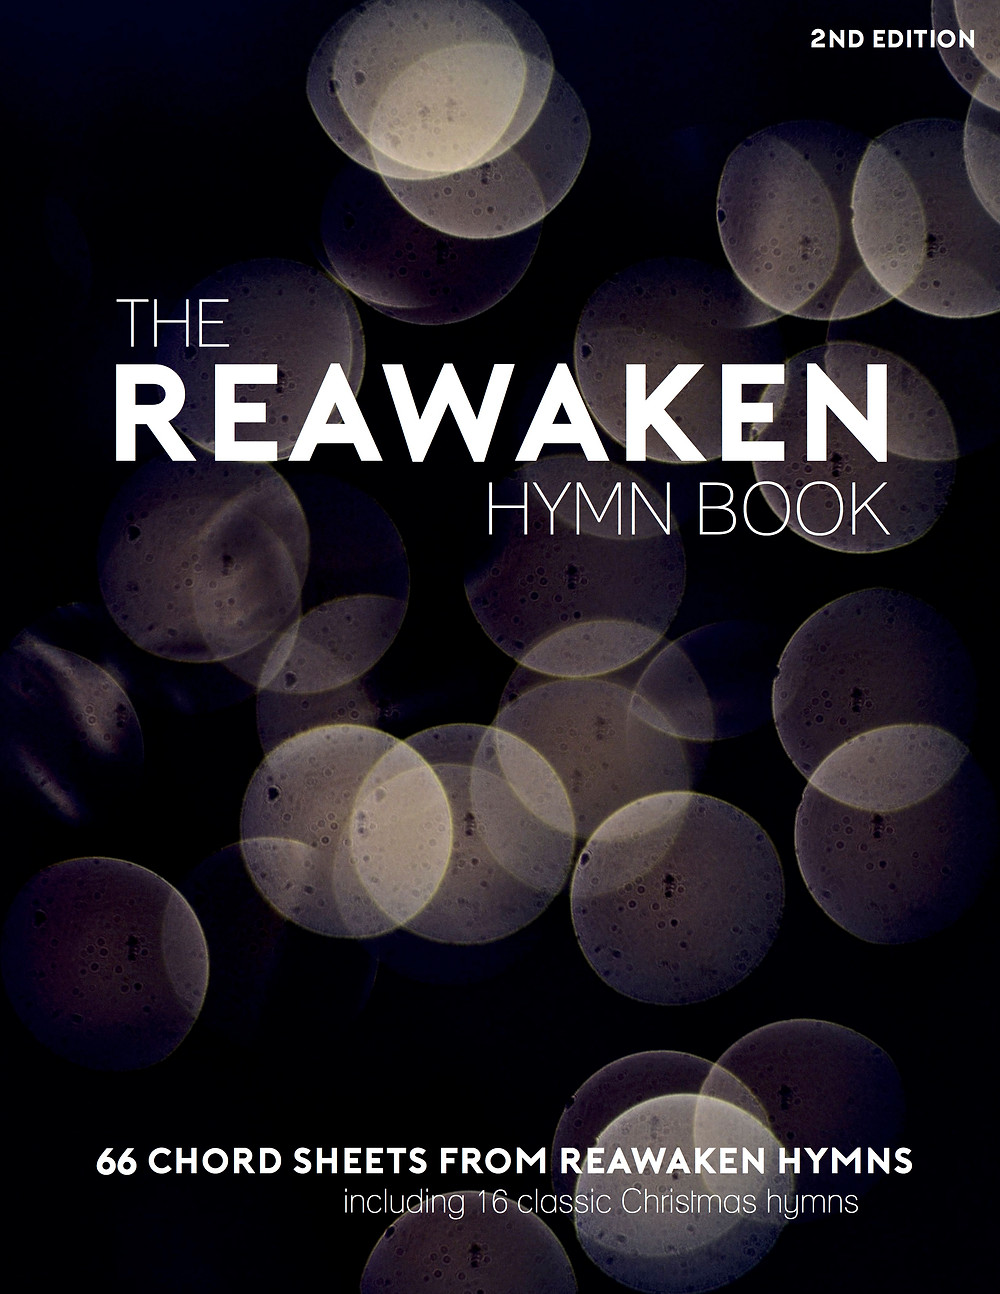 The Reawaken Hymn Book